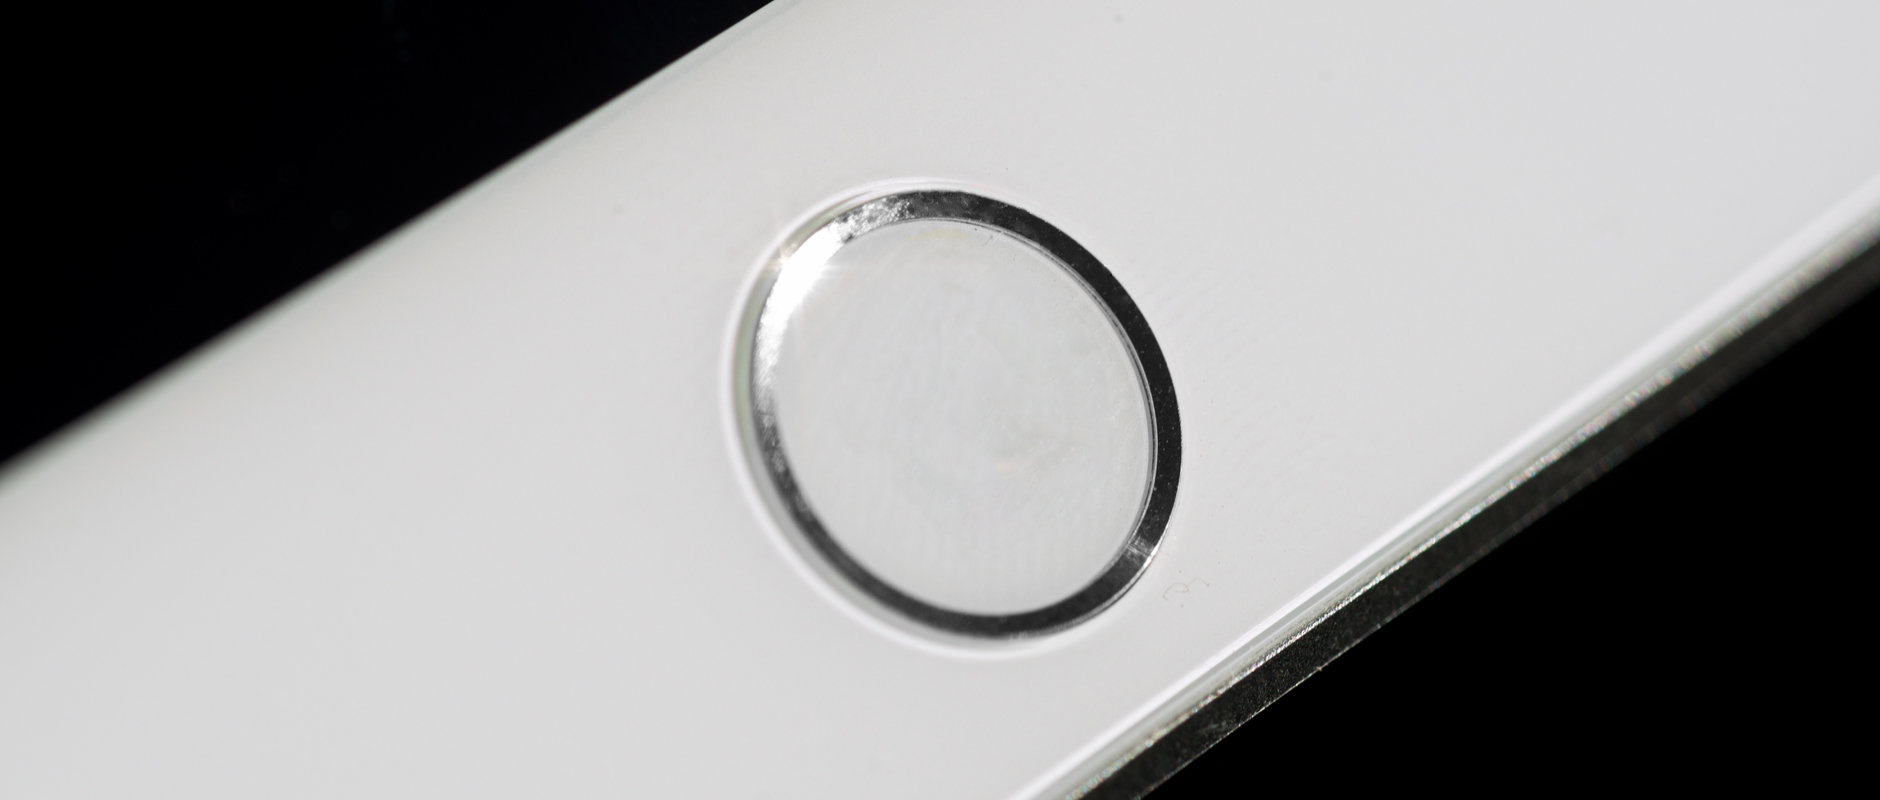 A photo of the Apple iPad mini 3's Touch ID sensor.